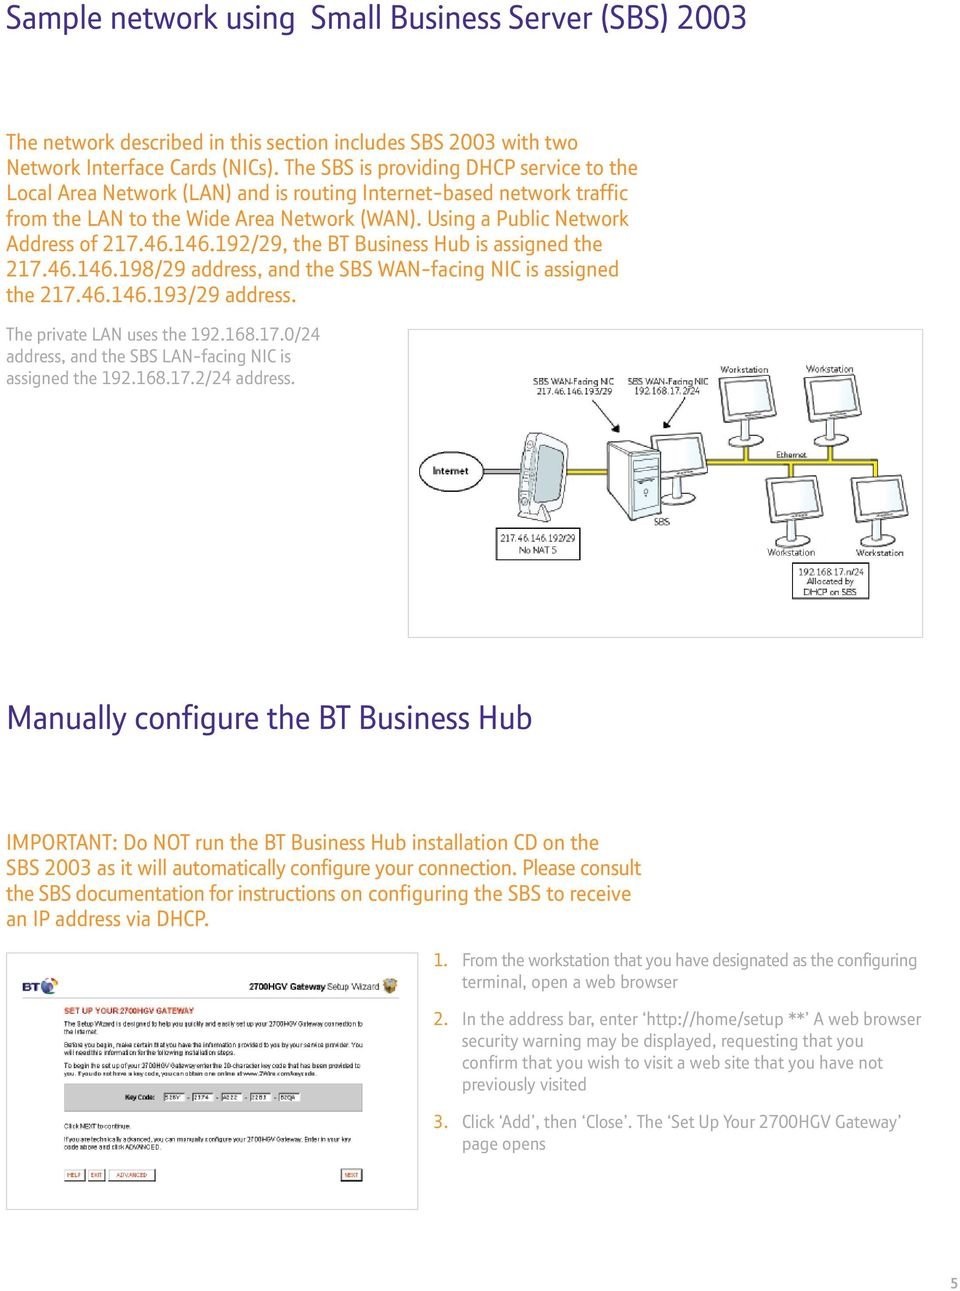 146.192/29, the BT Business Hub is assigned the 217.46.146.198/29 address, and the SBS WAN-facing NIC is assigned the 217.46.146.193/29 address. The private LAN uses the 192.168.17.0/24 address, and the SBS LAN-facing NIC is assigned the 192.